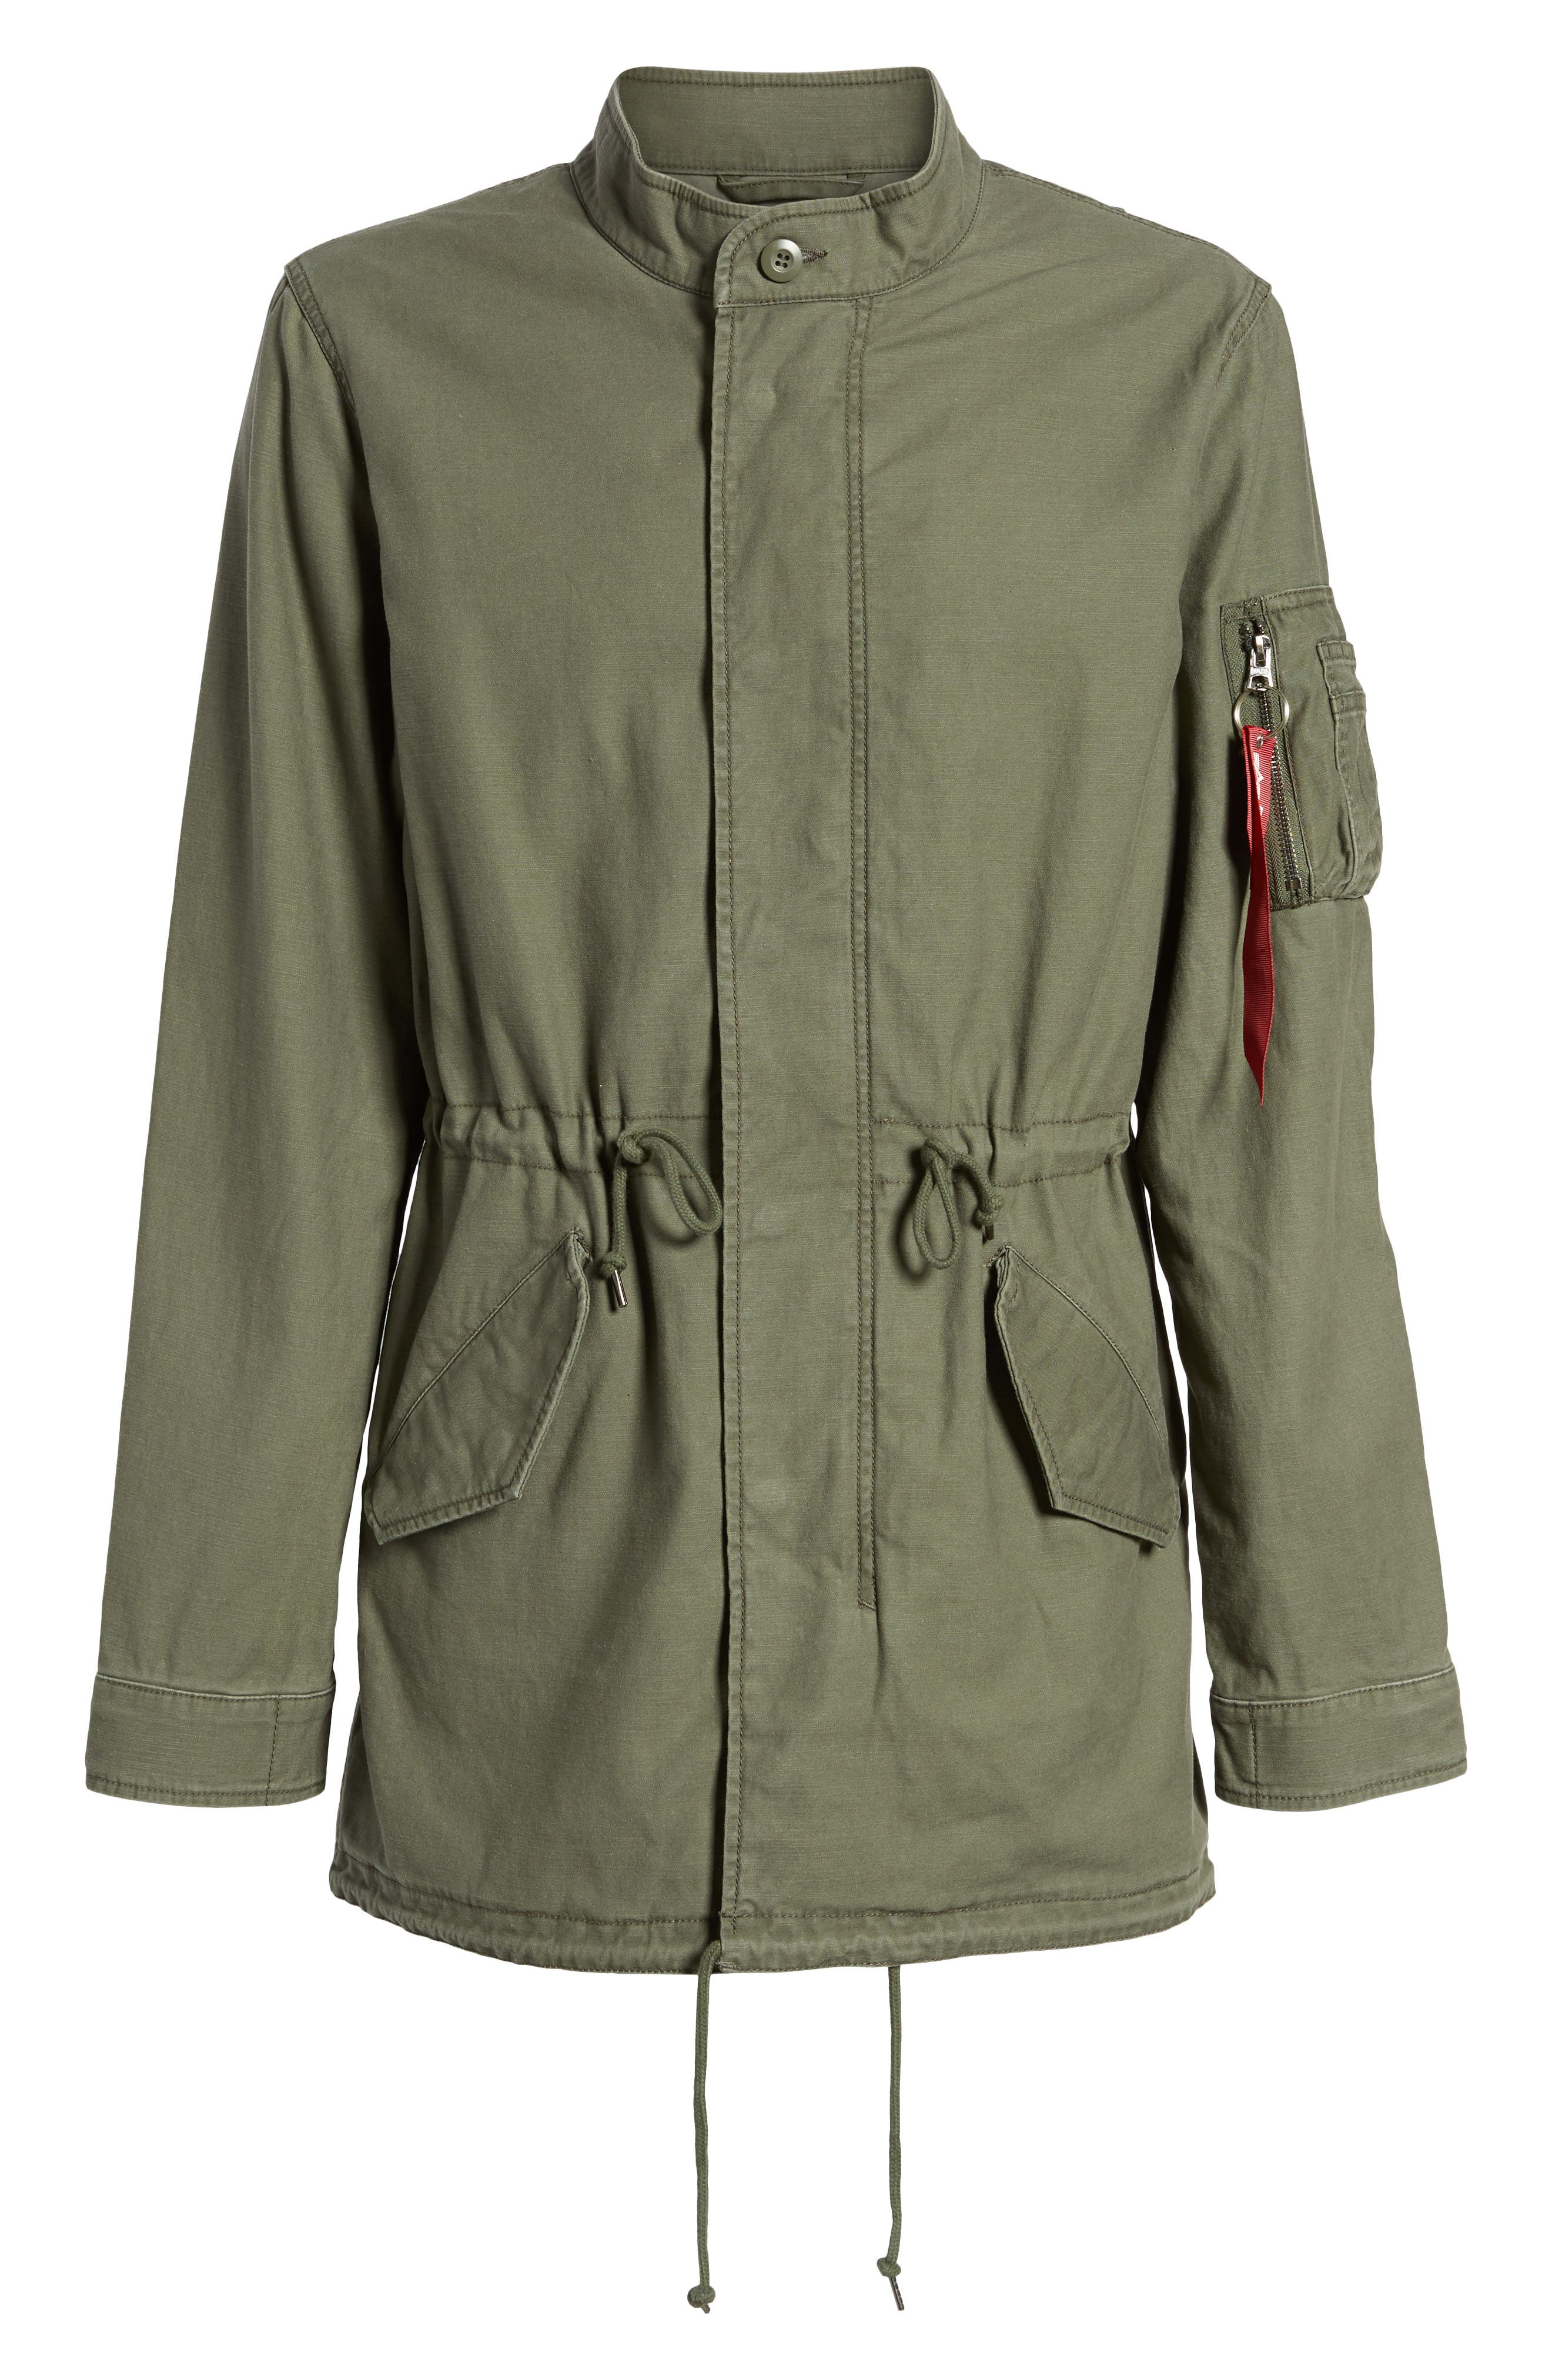 Recruit Fishtail Jacket,                             Alternate thumbnail 5, color,                             304